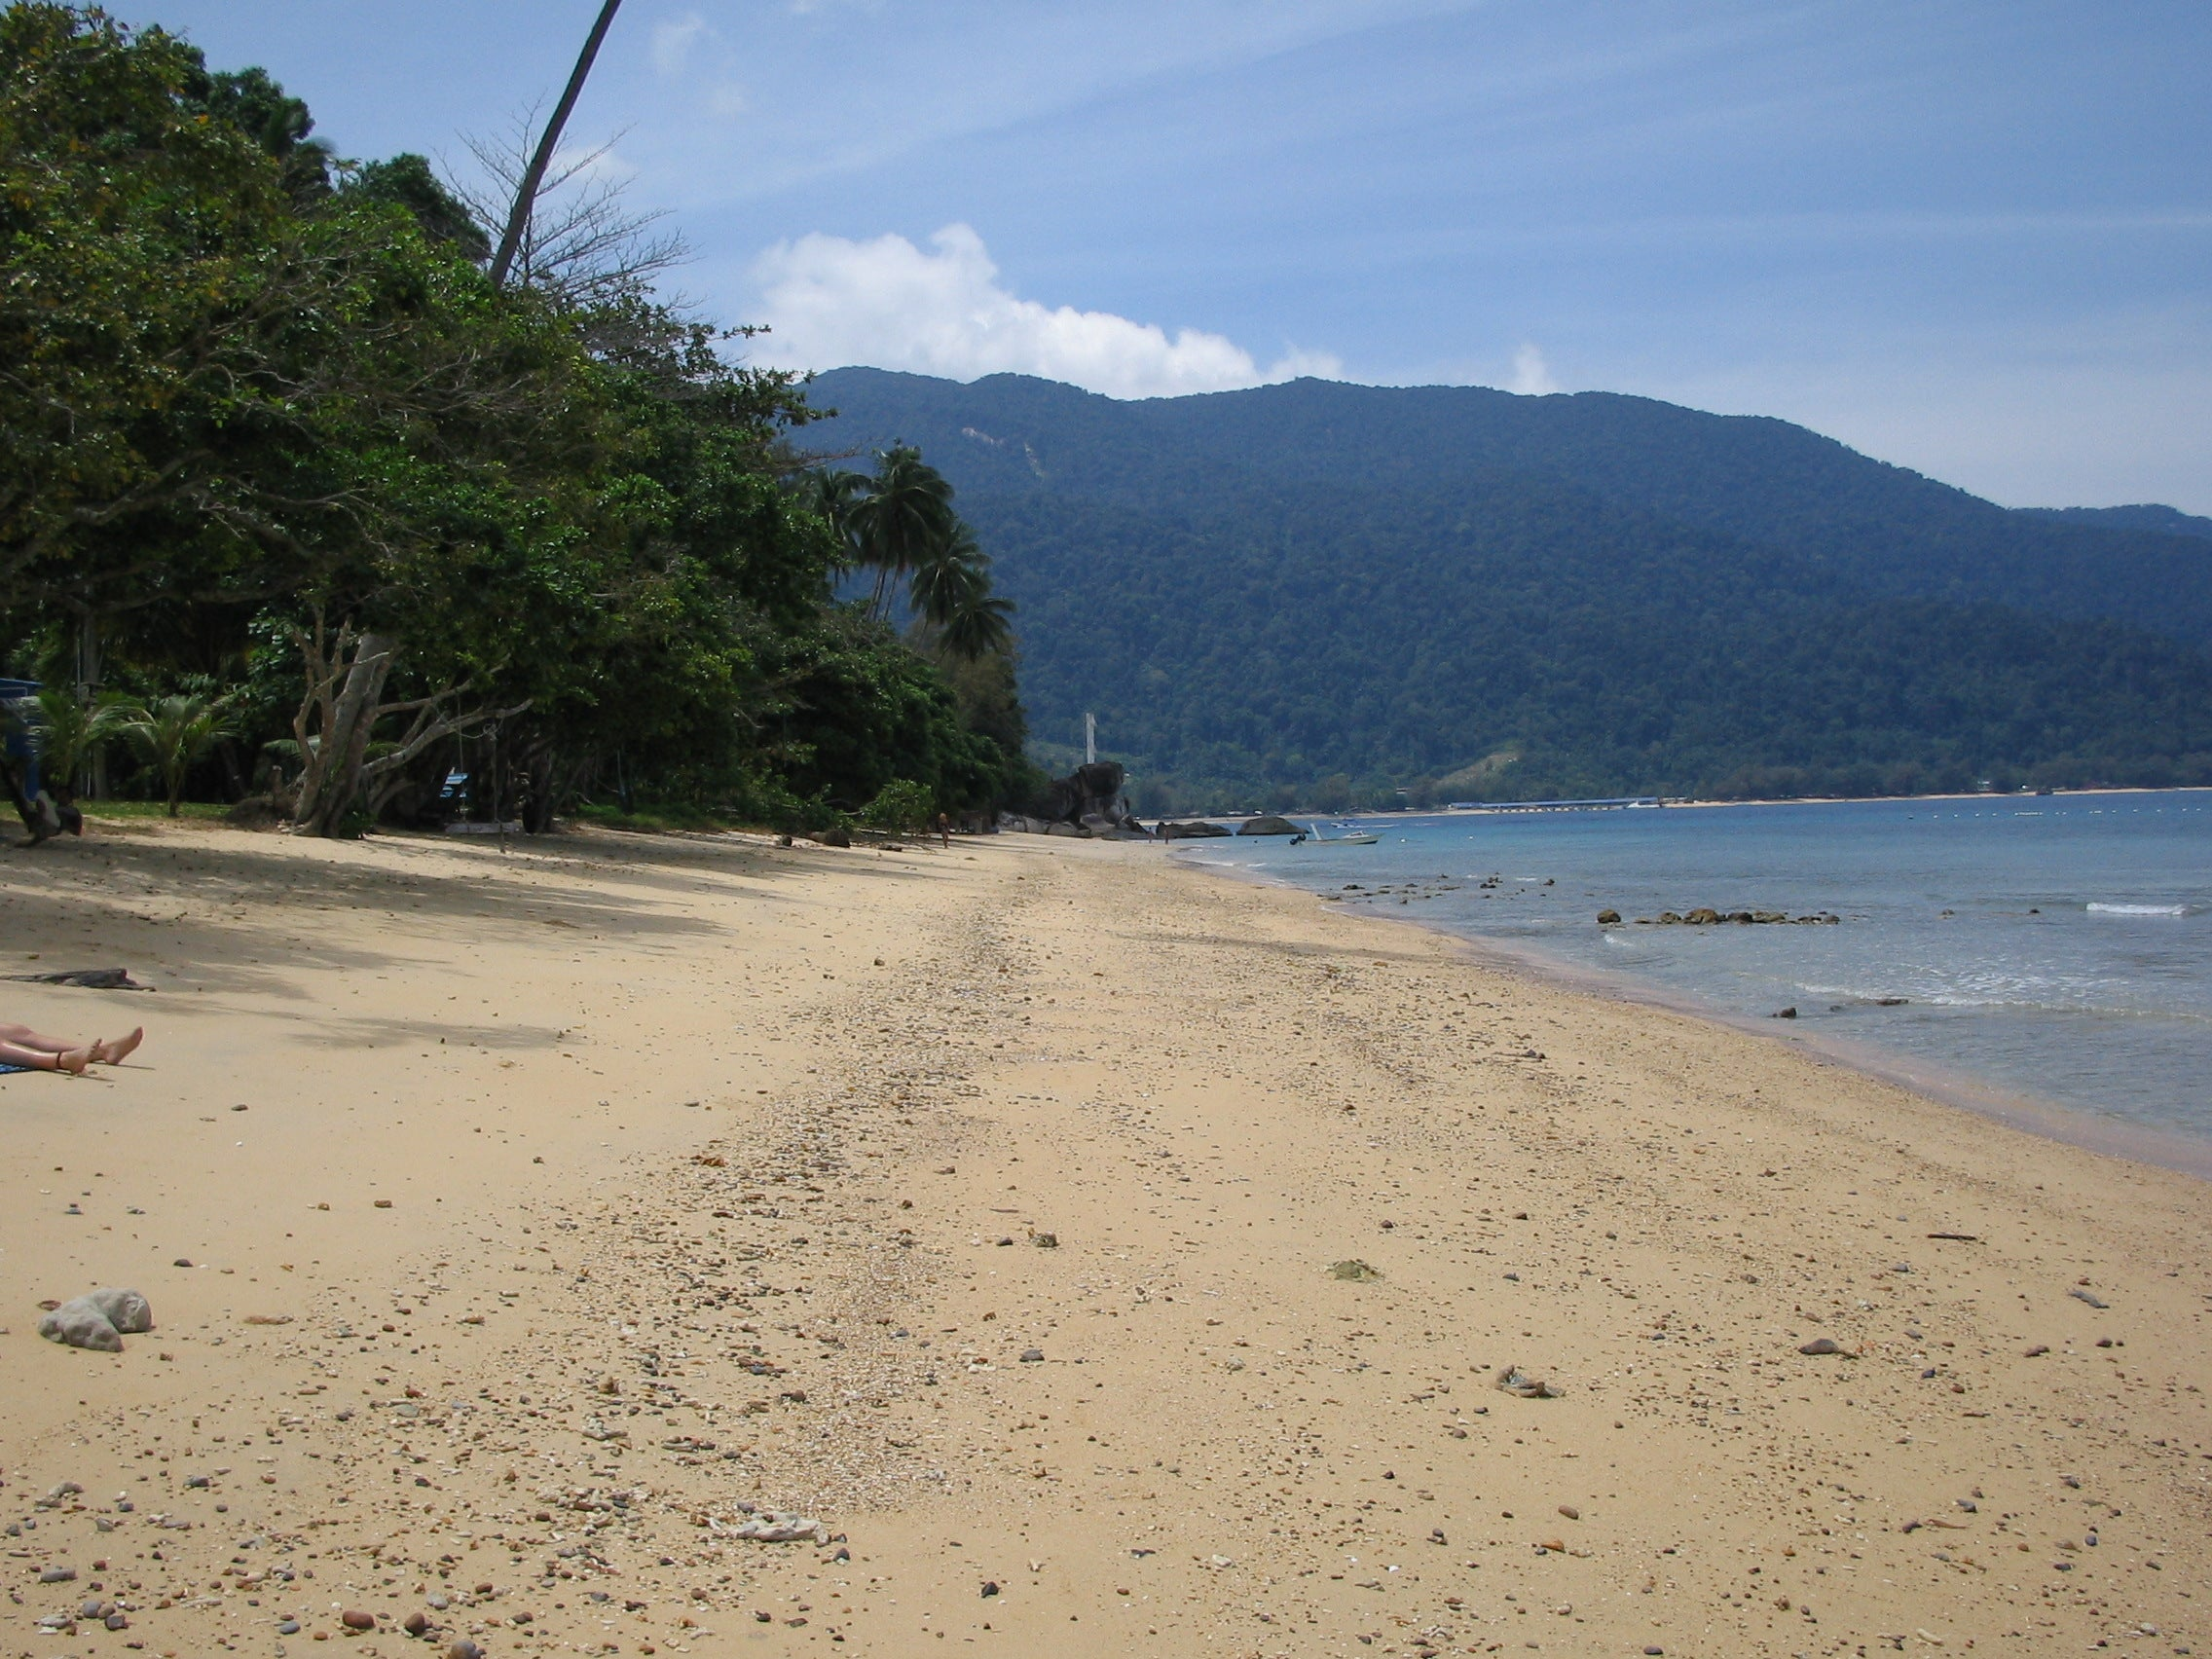 Mar en Playas de Tioman